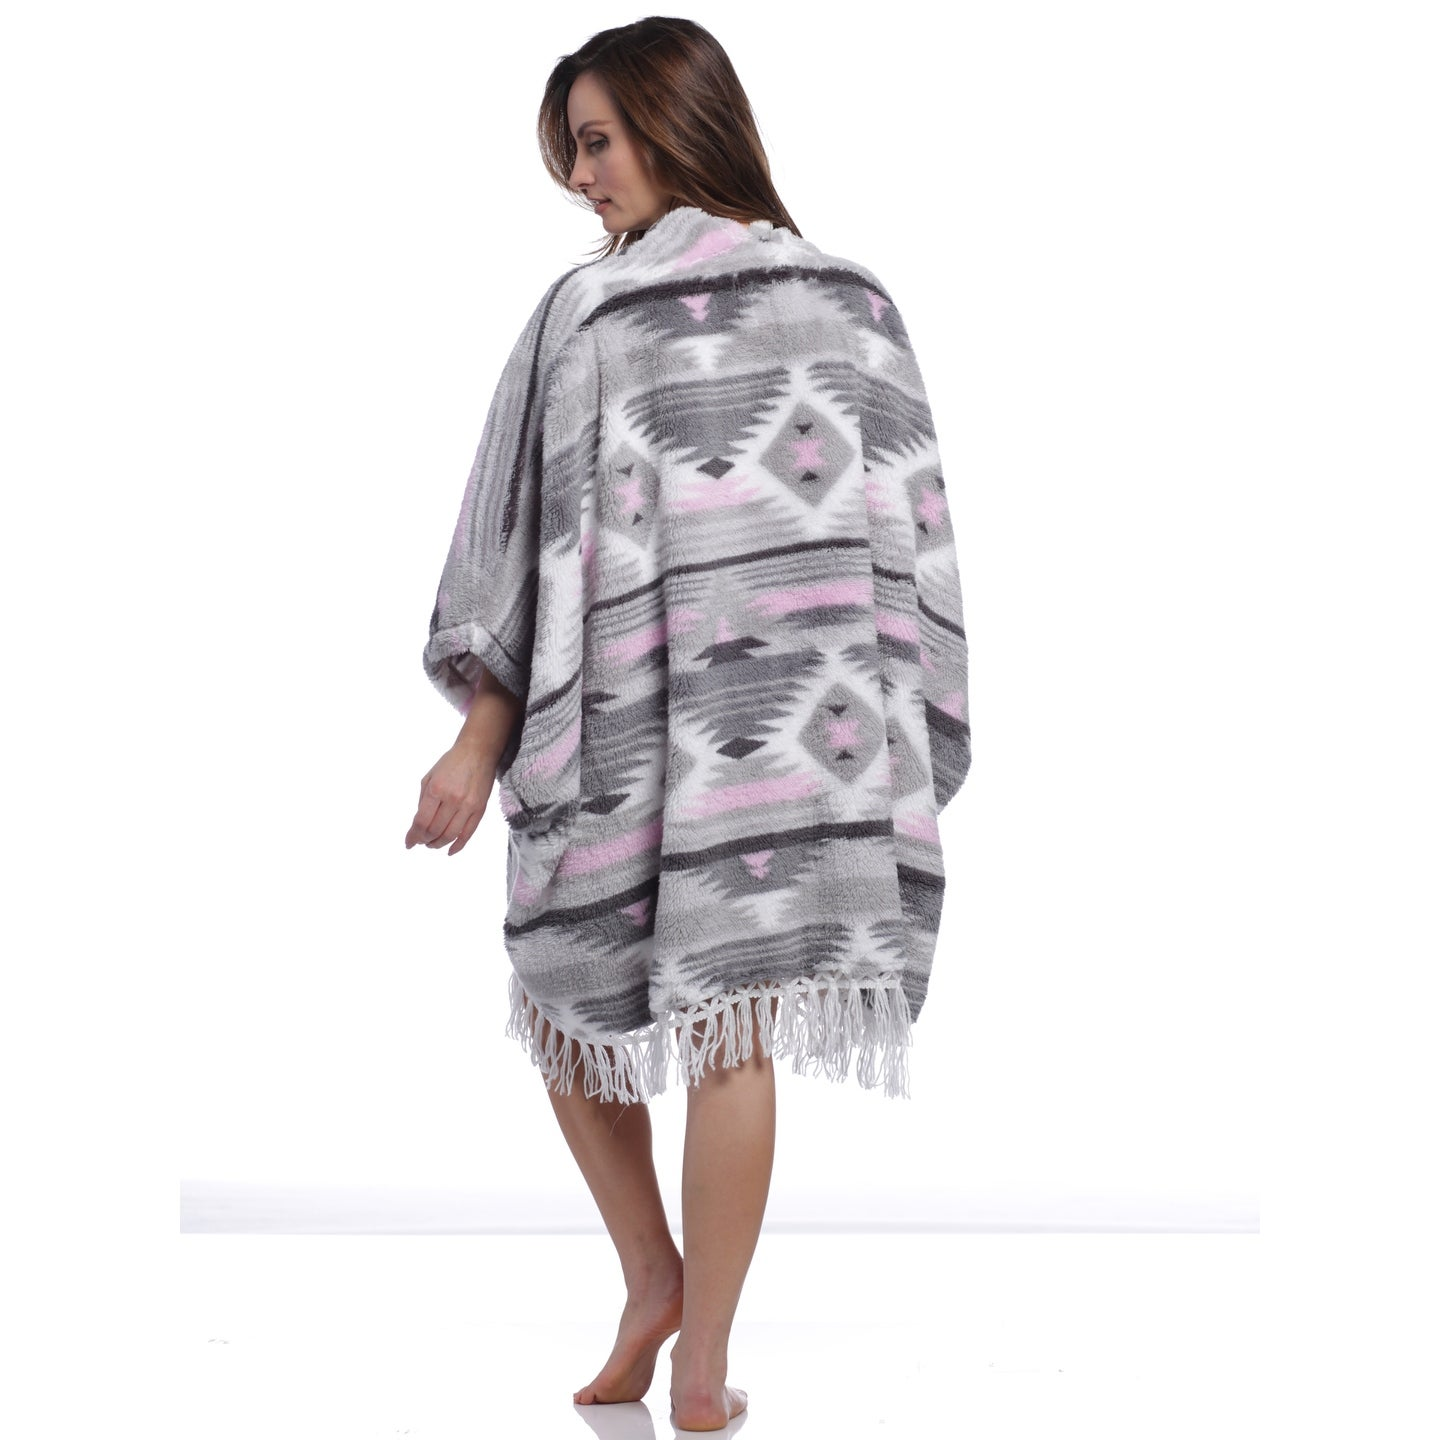 805fb34315207 Shop PJ Couture Women's Chelsea Girl Aztec Blanket Wrap - Free Shipping On  Orders Over $45 - Overstock.com - 25640180